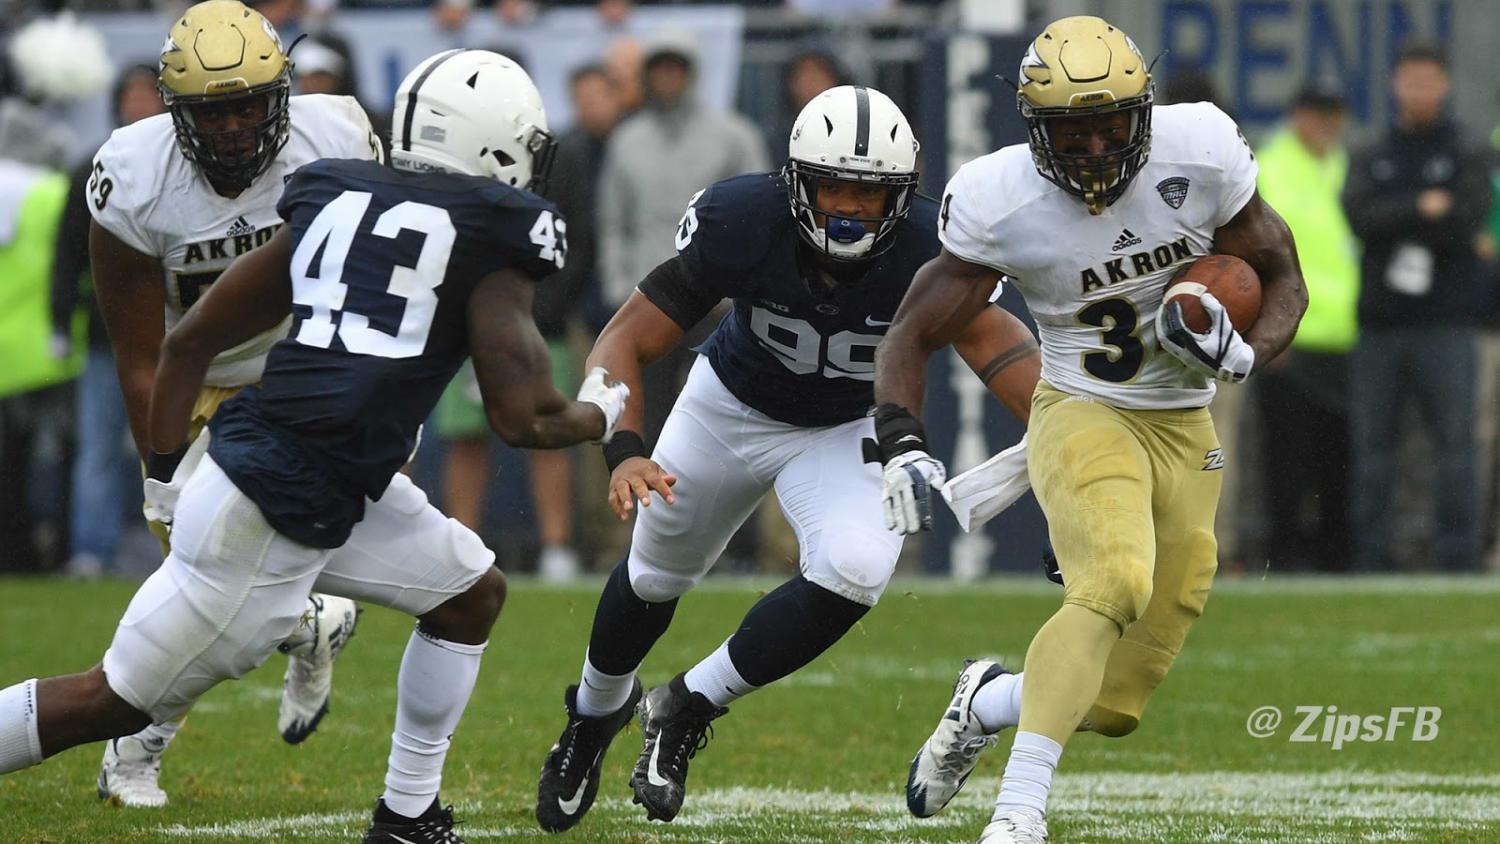 RB Warren Ball charges through the Nittany Lion Defensive Line. (Photo courtesy of Zips Football)